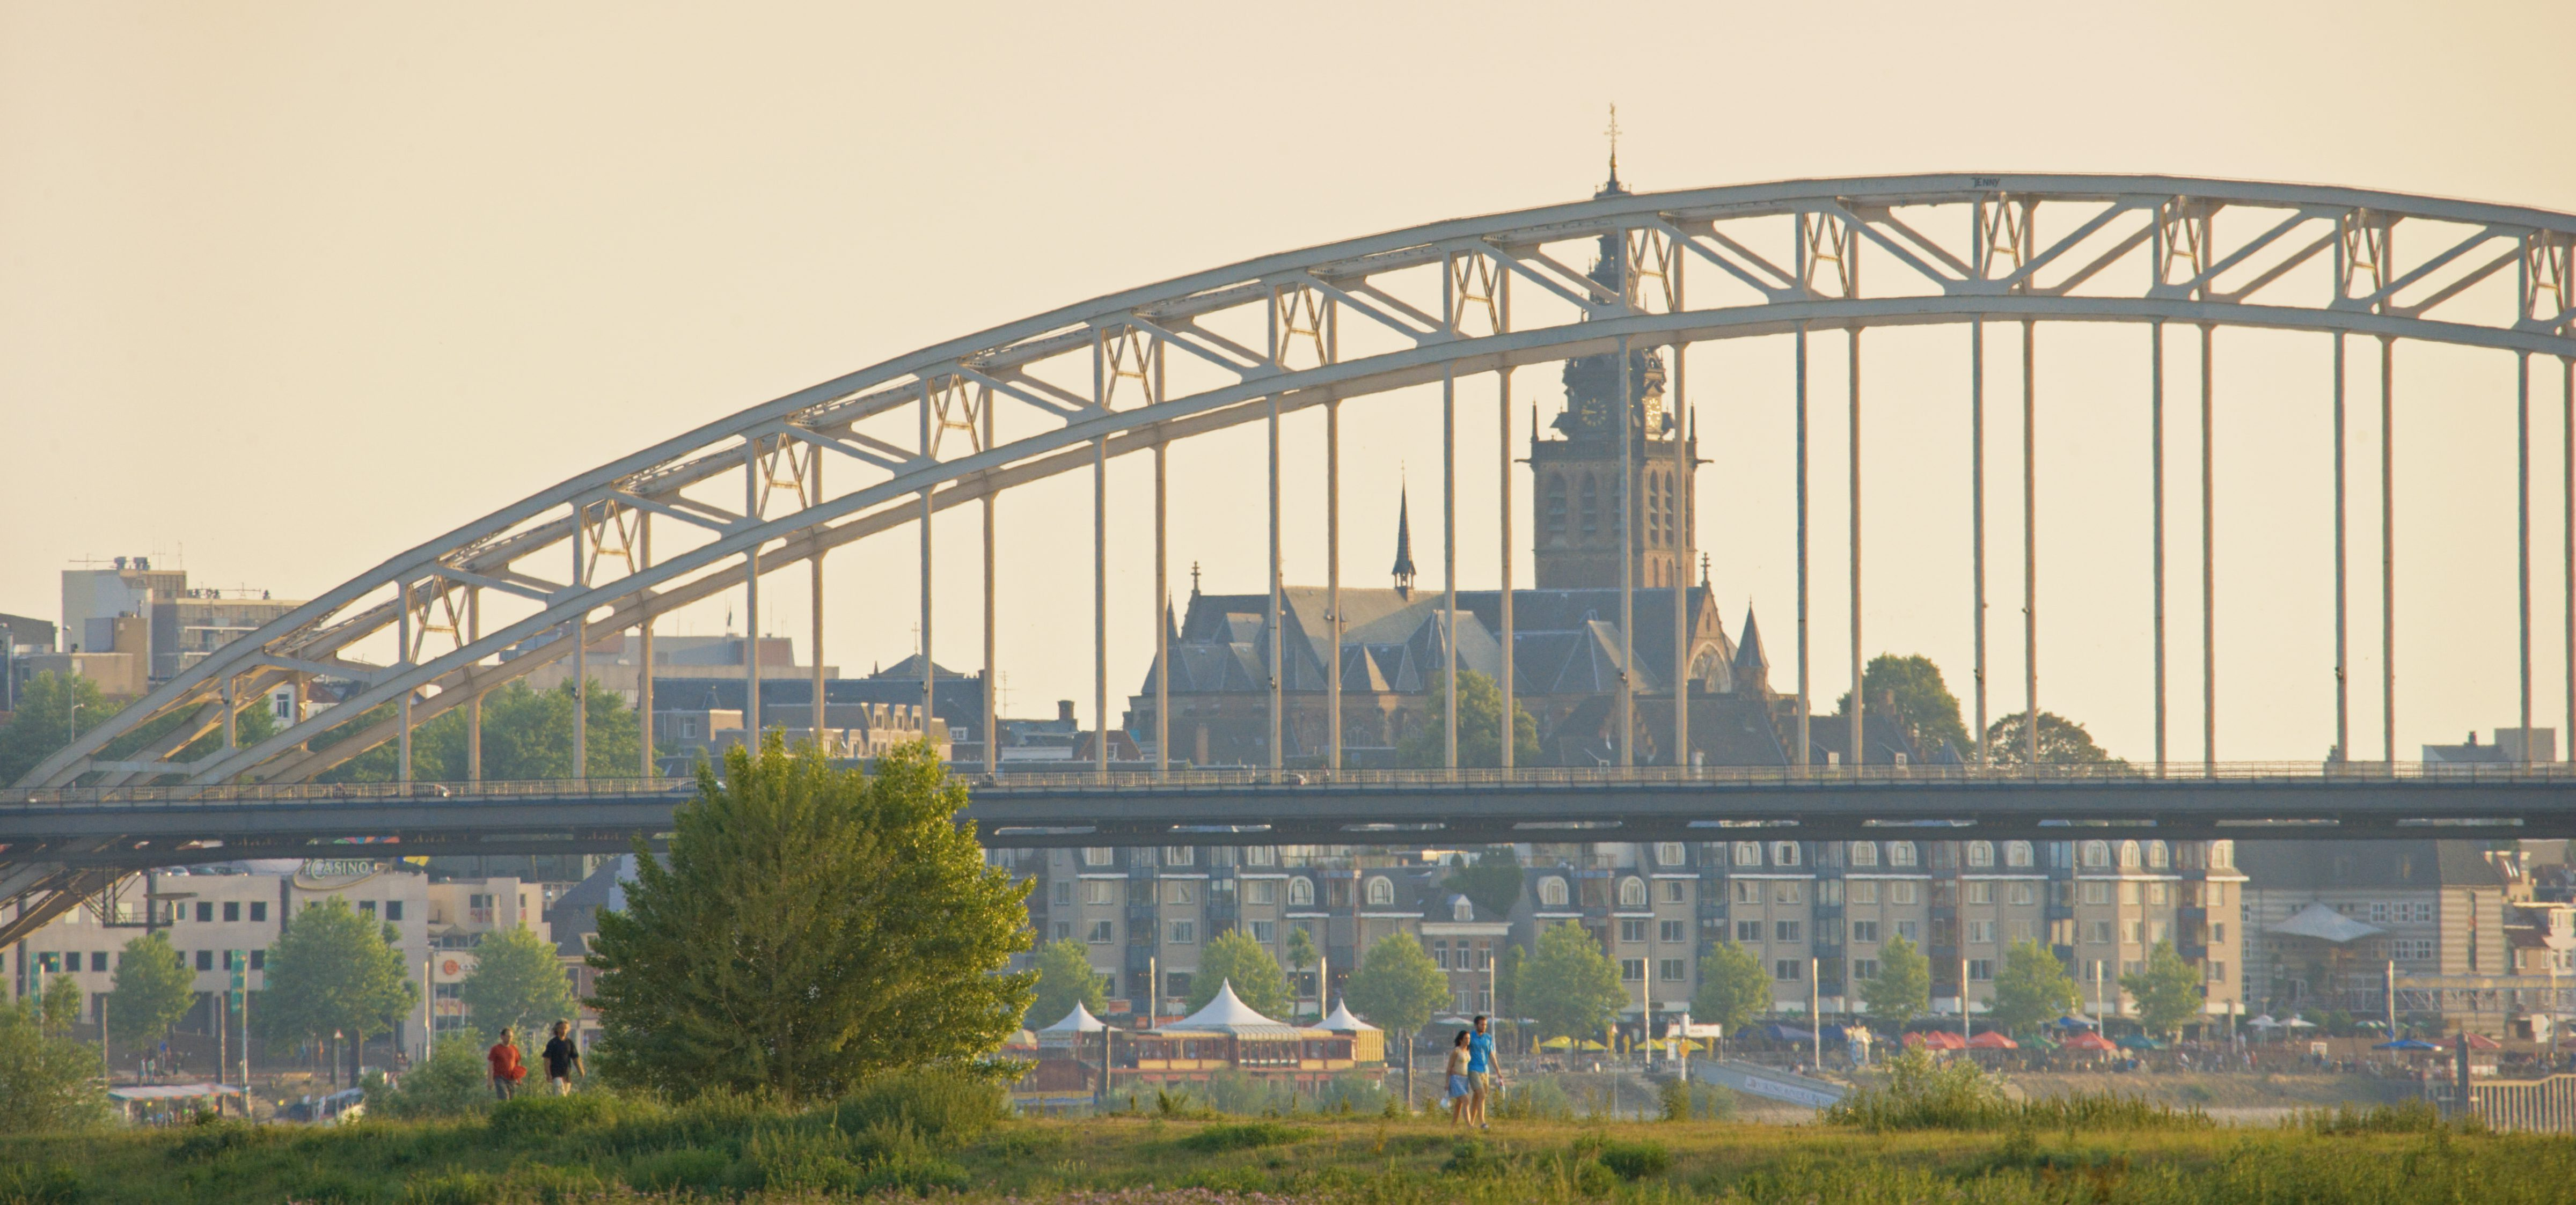 Netherlands, Nijmegen. View from the Ooijpolder towards the 'Waalbrug' bridge and the city of Nijmegen.